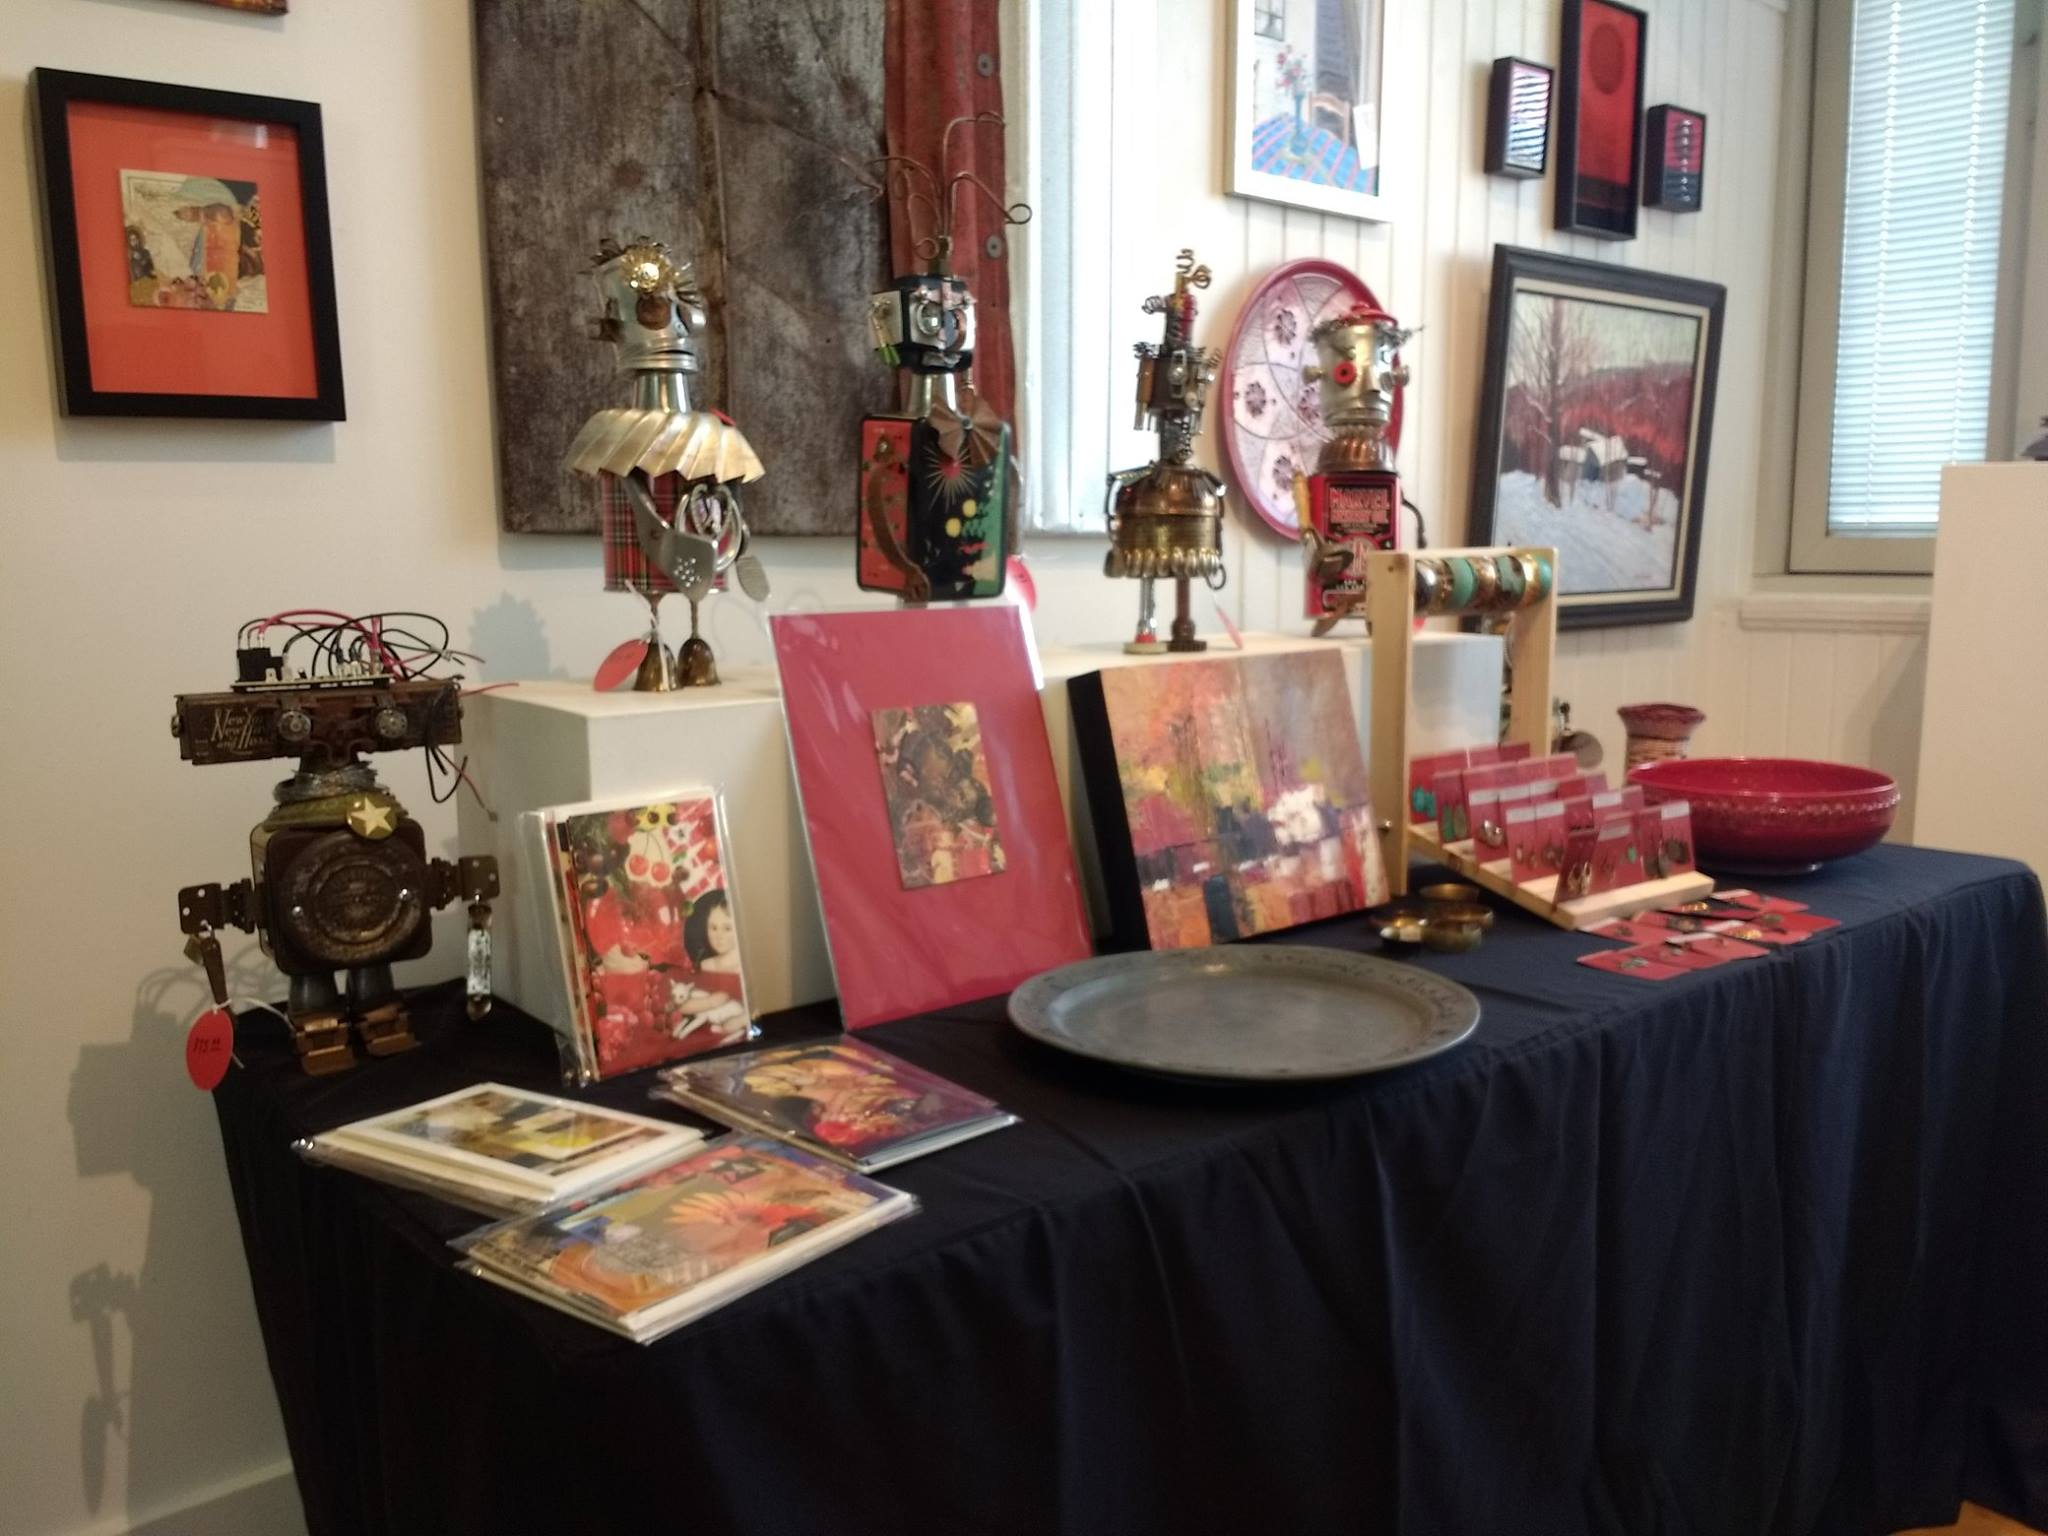 Holiday Market at the Arts Center ~ Community Arts Center, Danville, Kentucky ~ November 17 to December 23, 2017